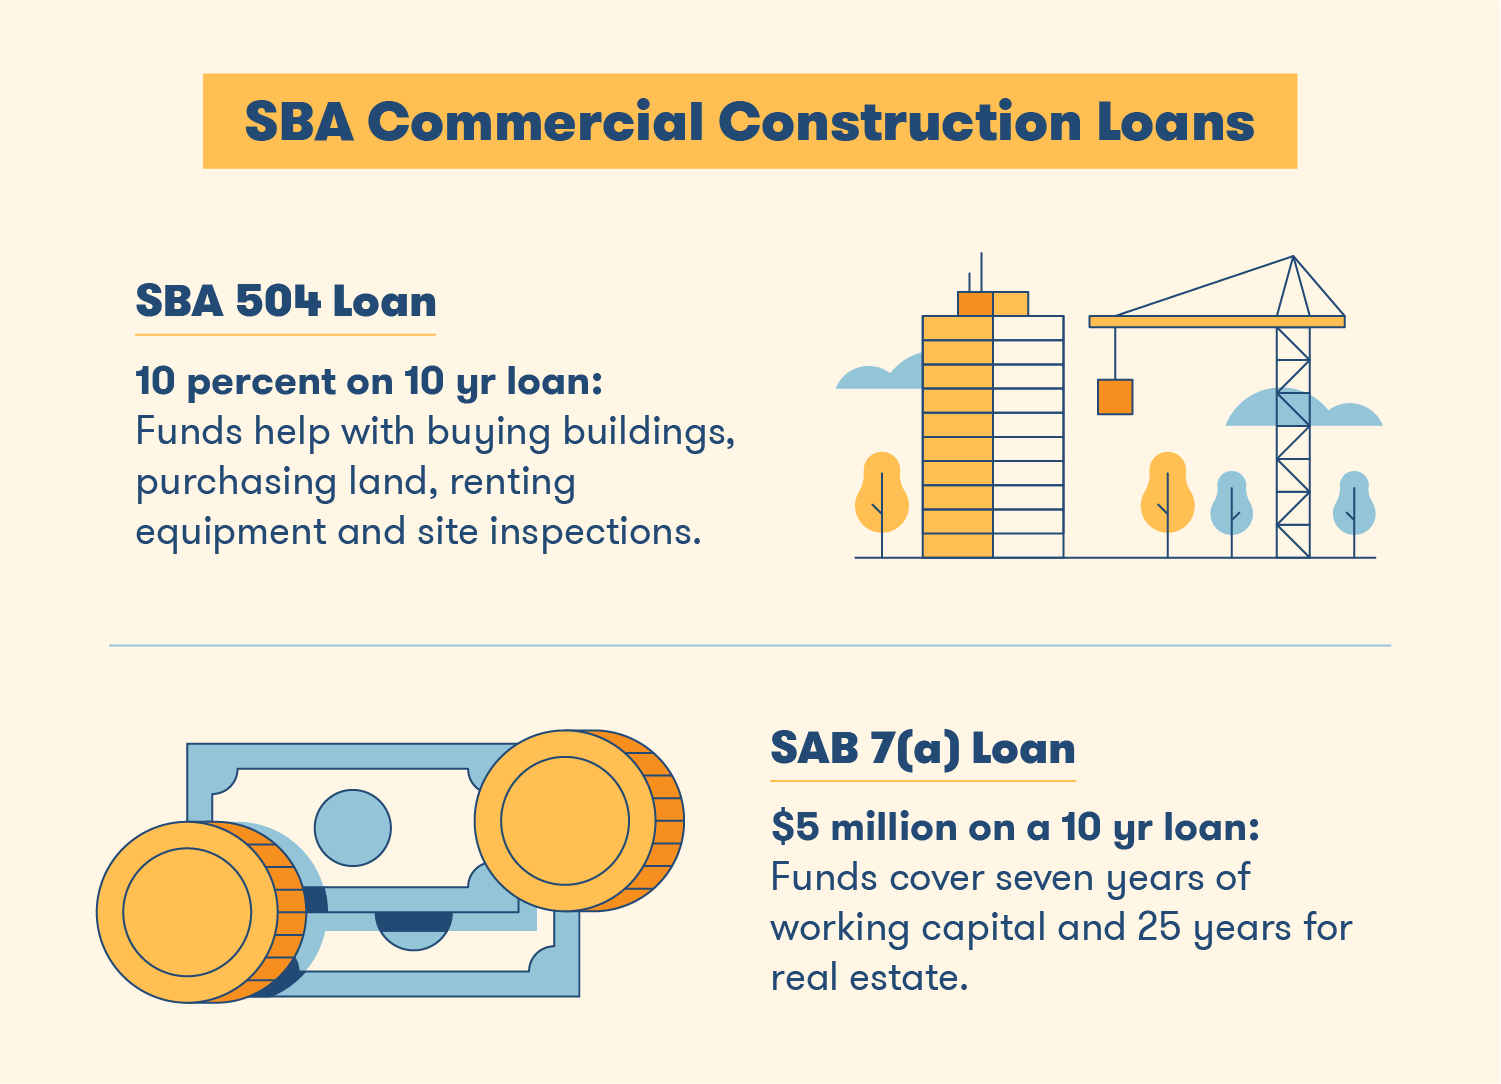 SBA Commercial Construction Loans - SBA 504 Loan vs SAB 7a Loan